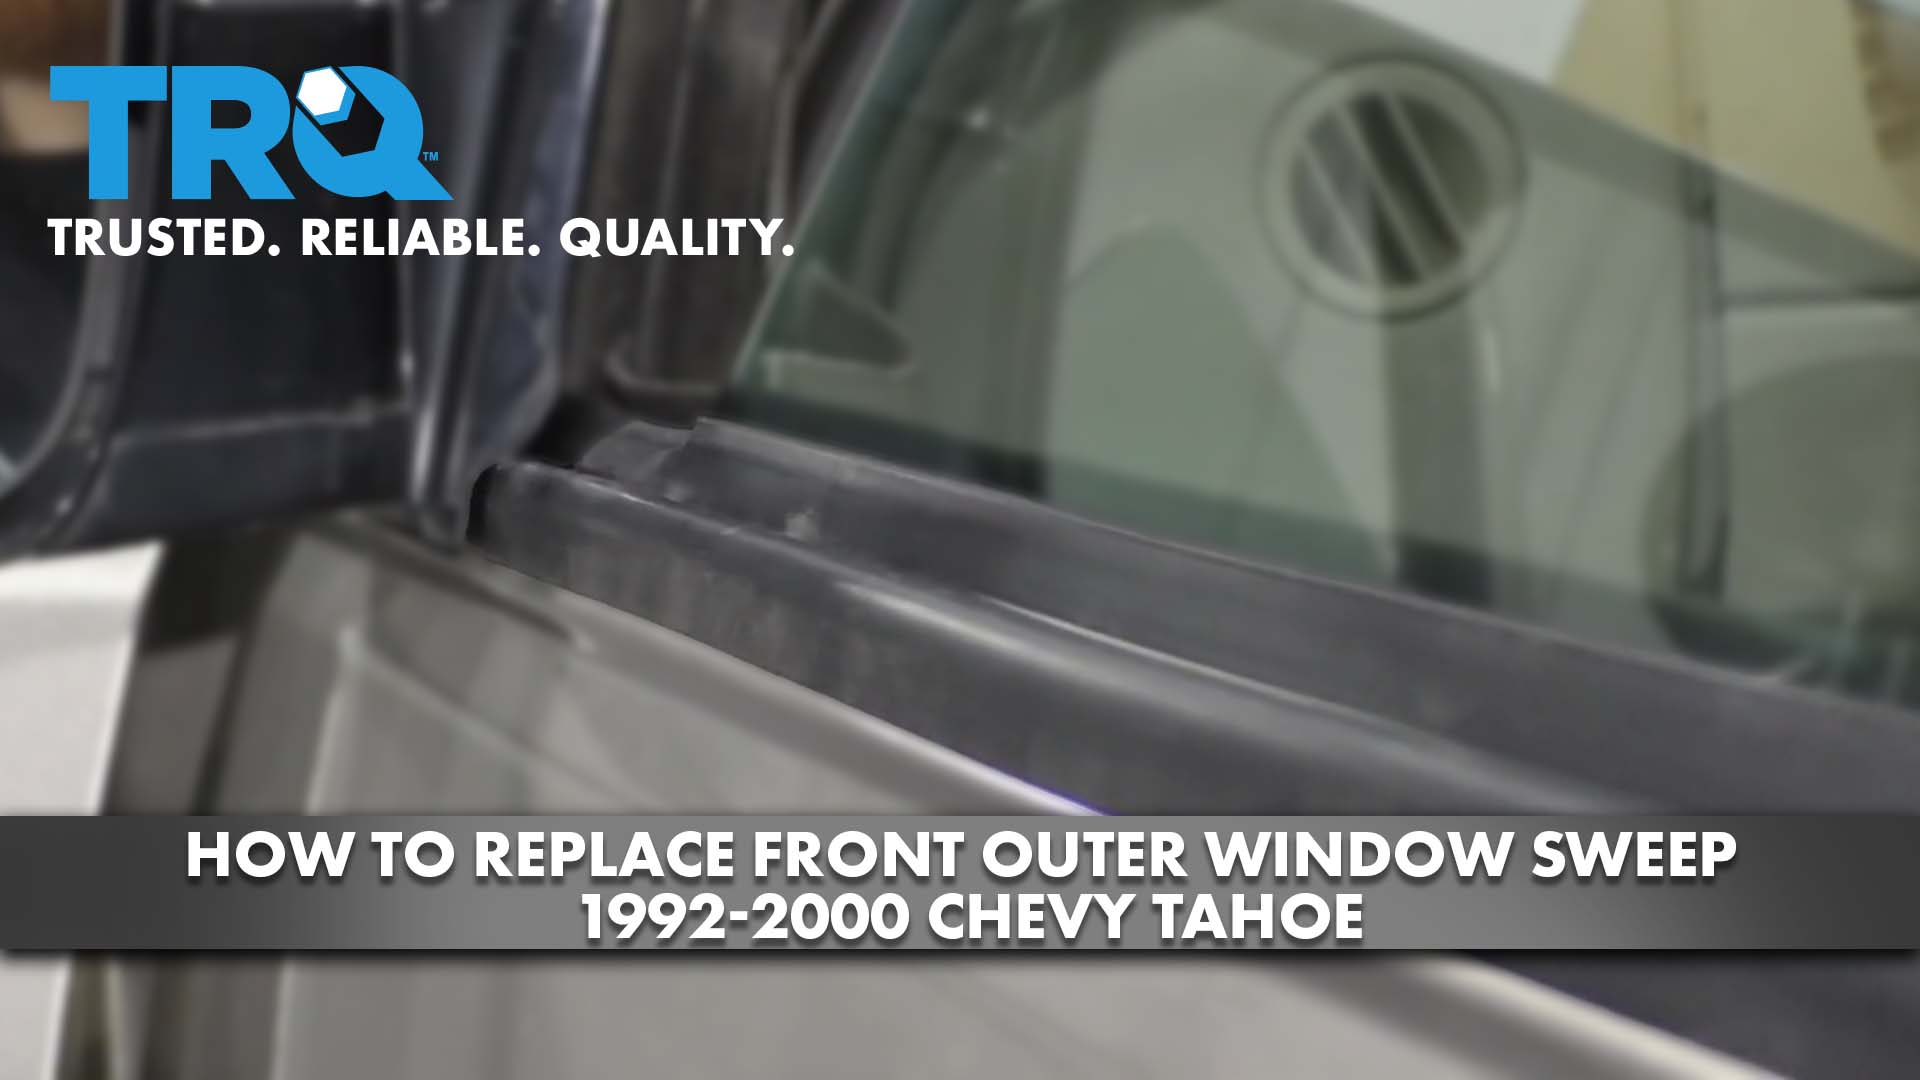 How to Replace Front Outer Window Sweep 1992-00 Chevy Tahoe